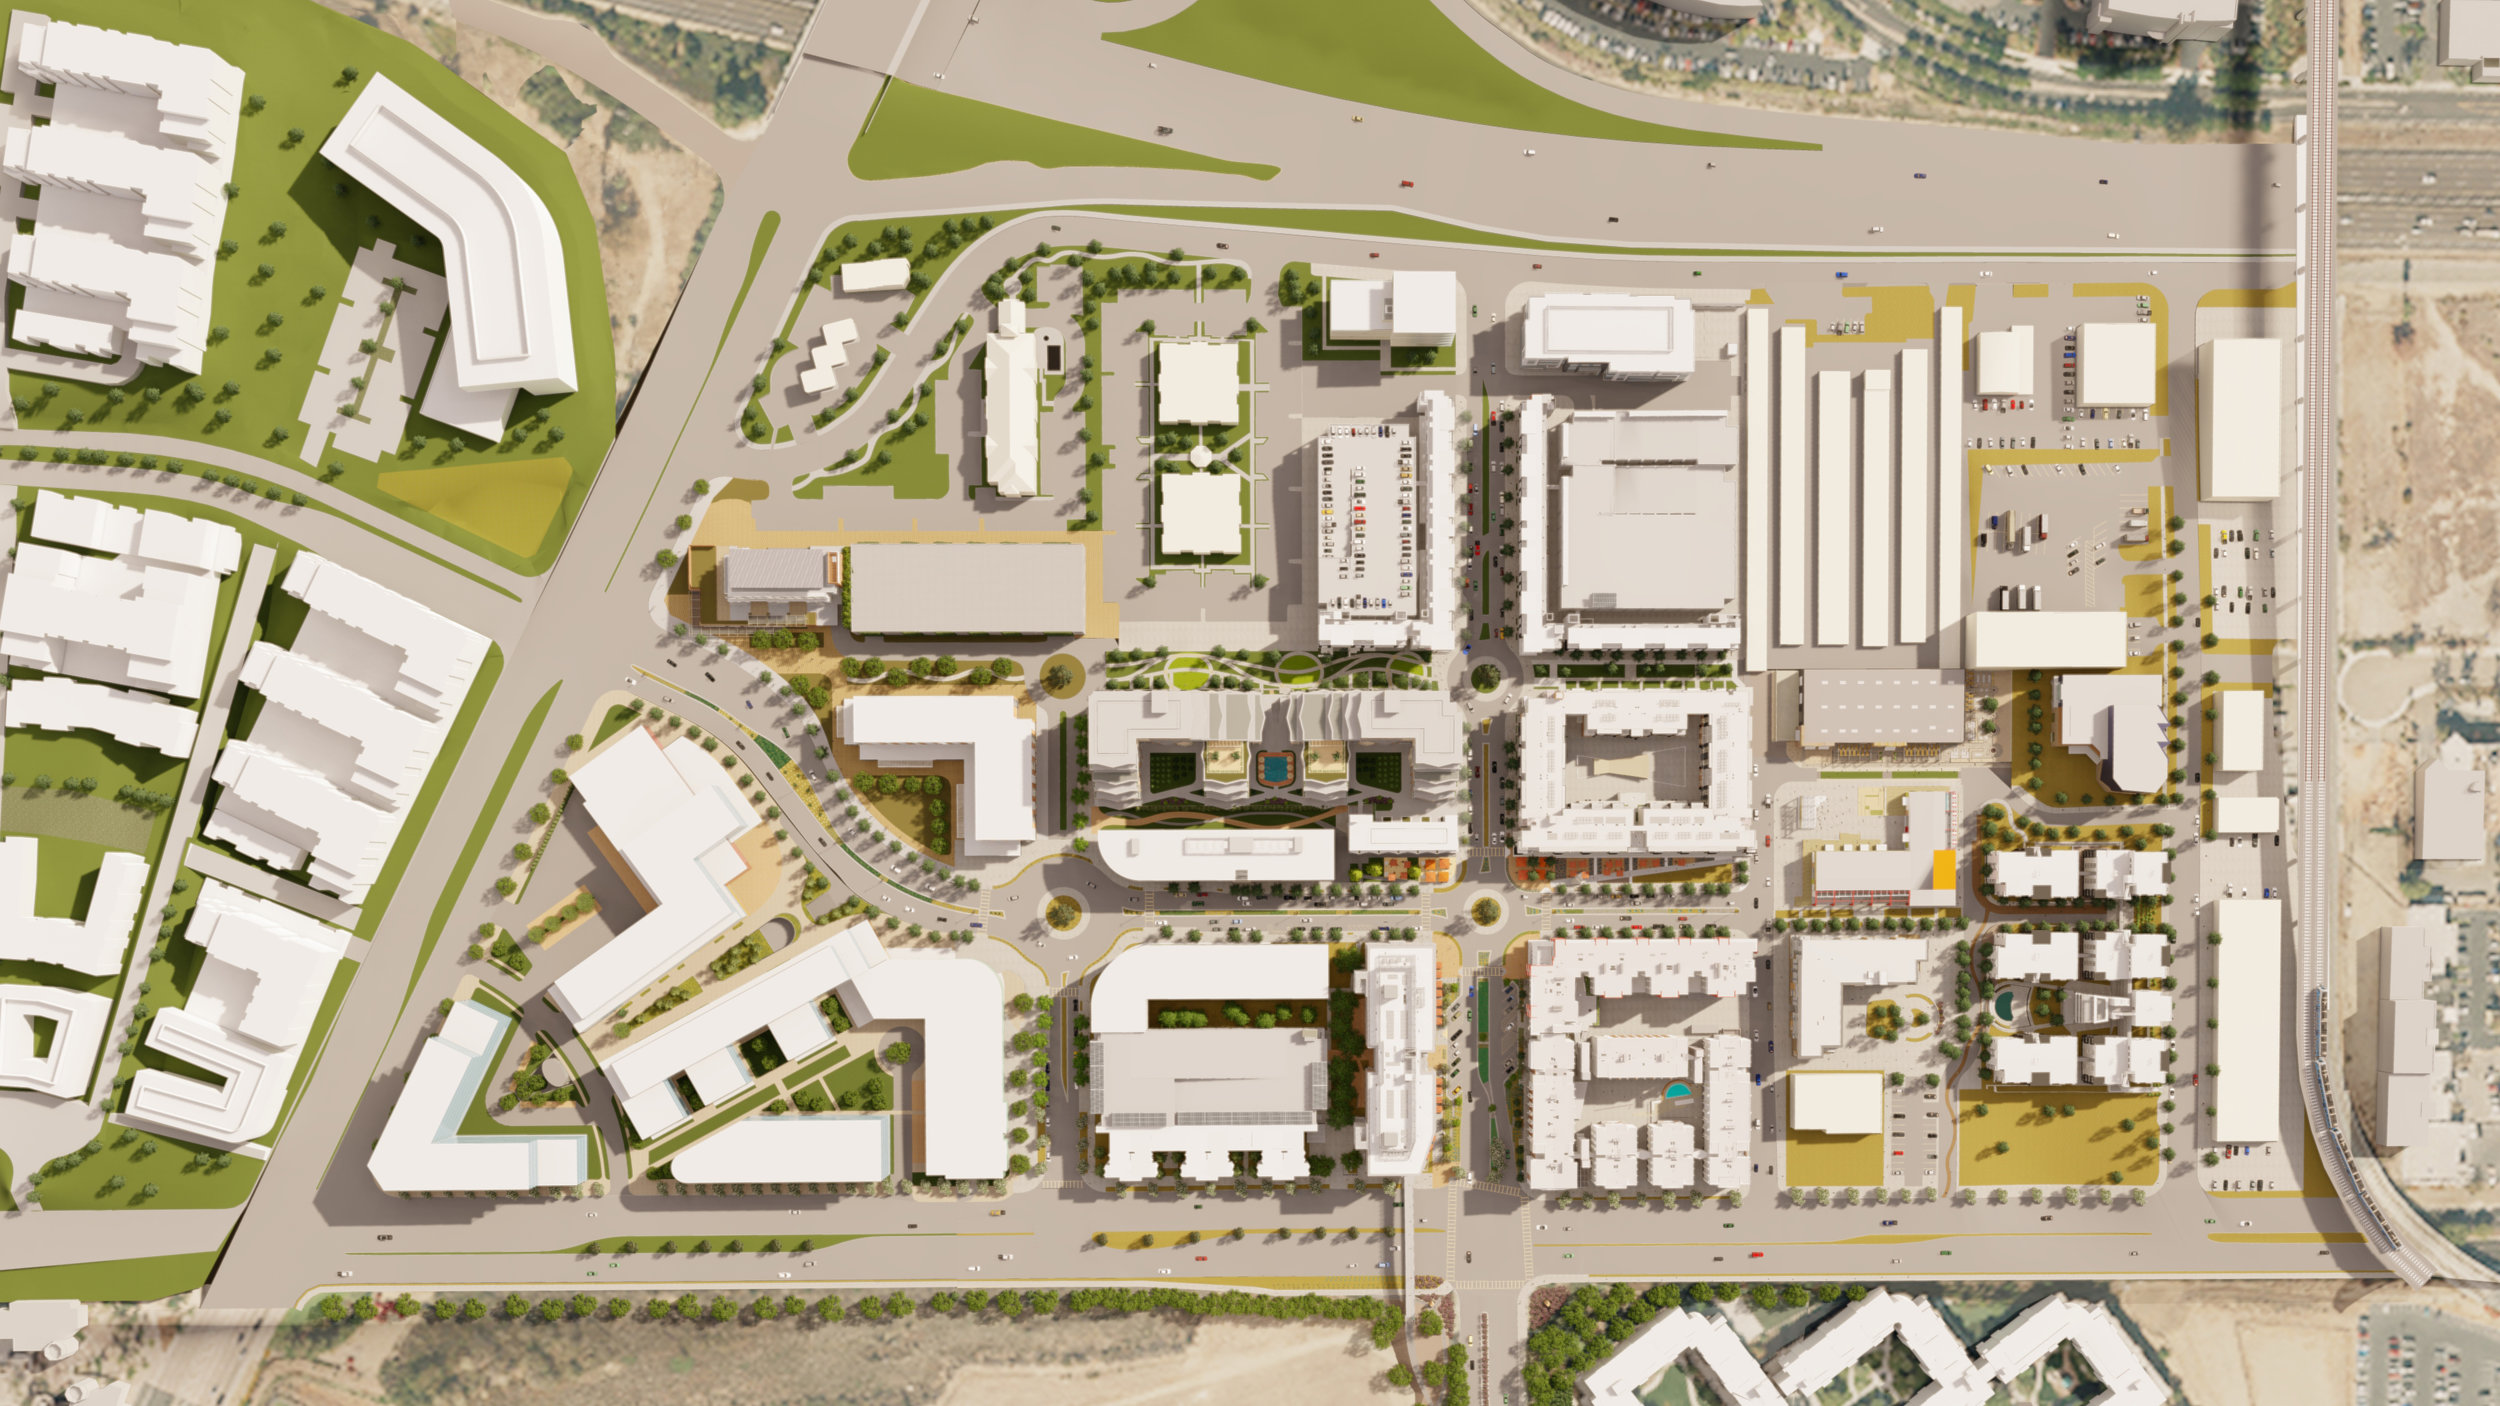 A draft example of Safdie Rabines Architects' potential arial rendering of North City.  Subject to change.